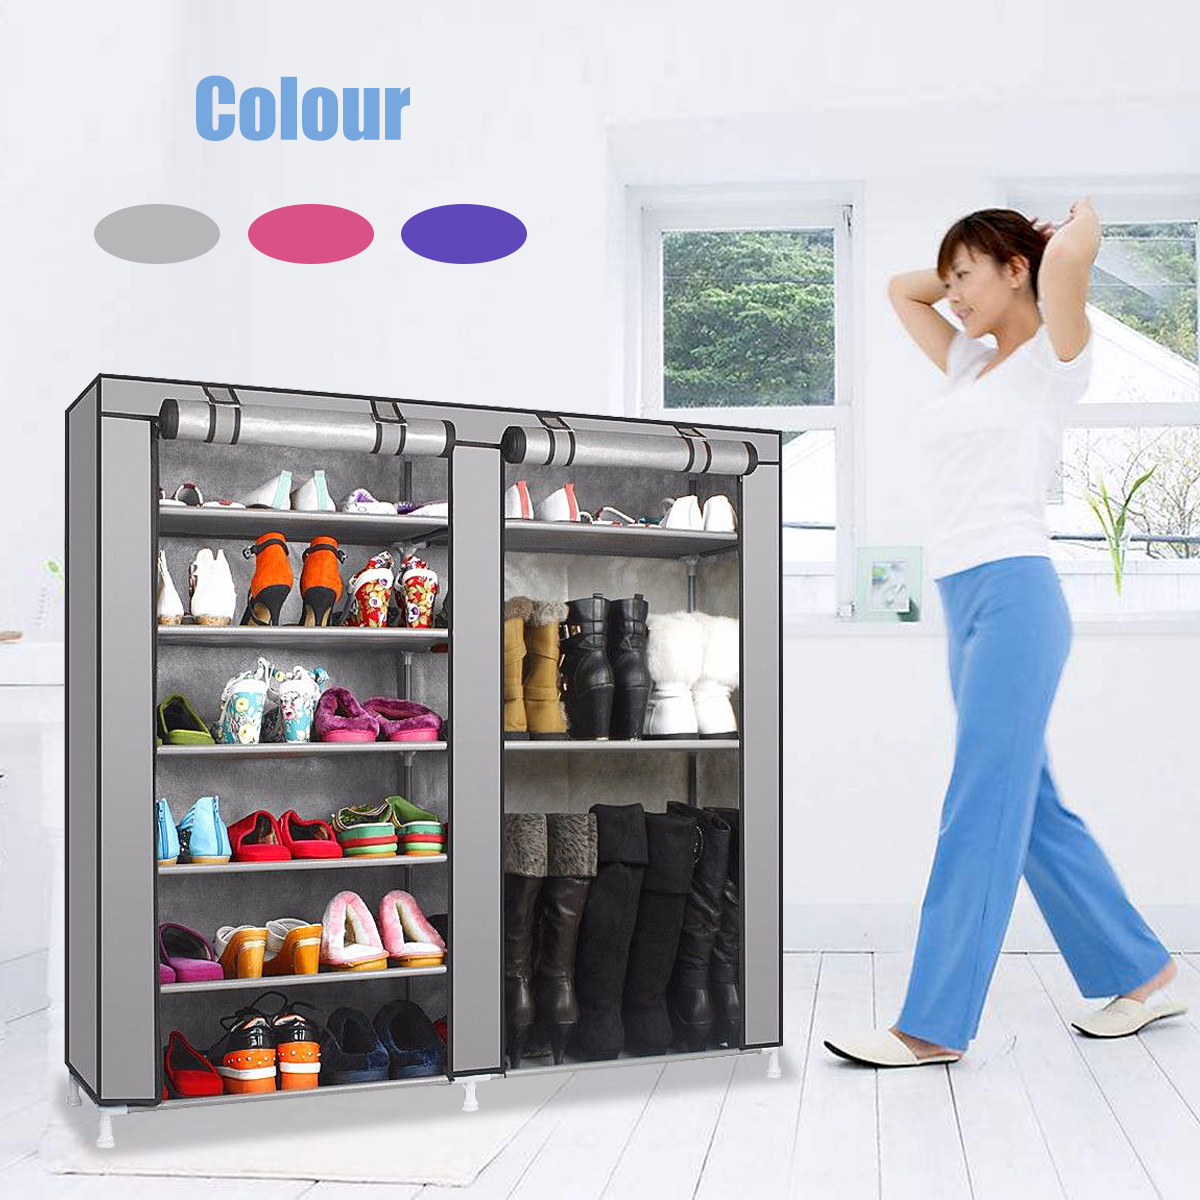 9 Layer 2 Rows Shoe Organizers Double Shoe Boot Closet Rack Shelf Storage Organizer Cabinet Portable with Fabric Cover